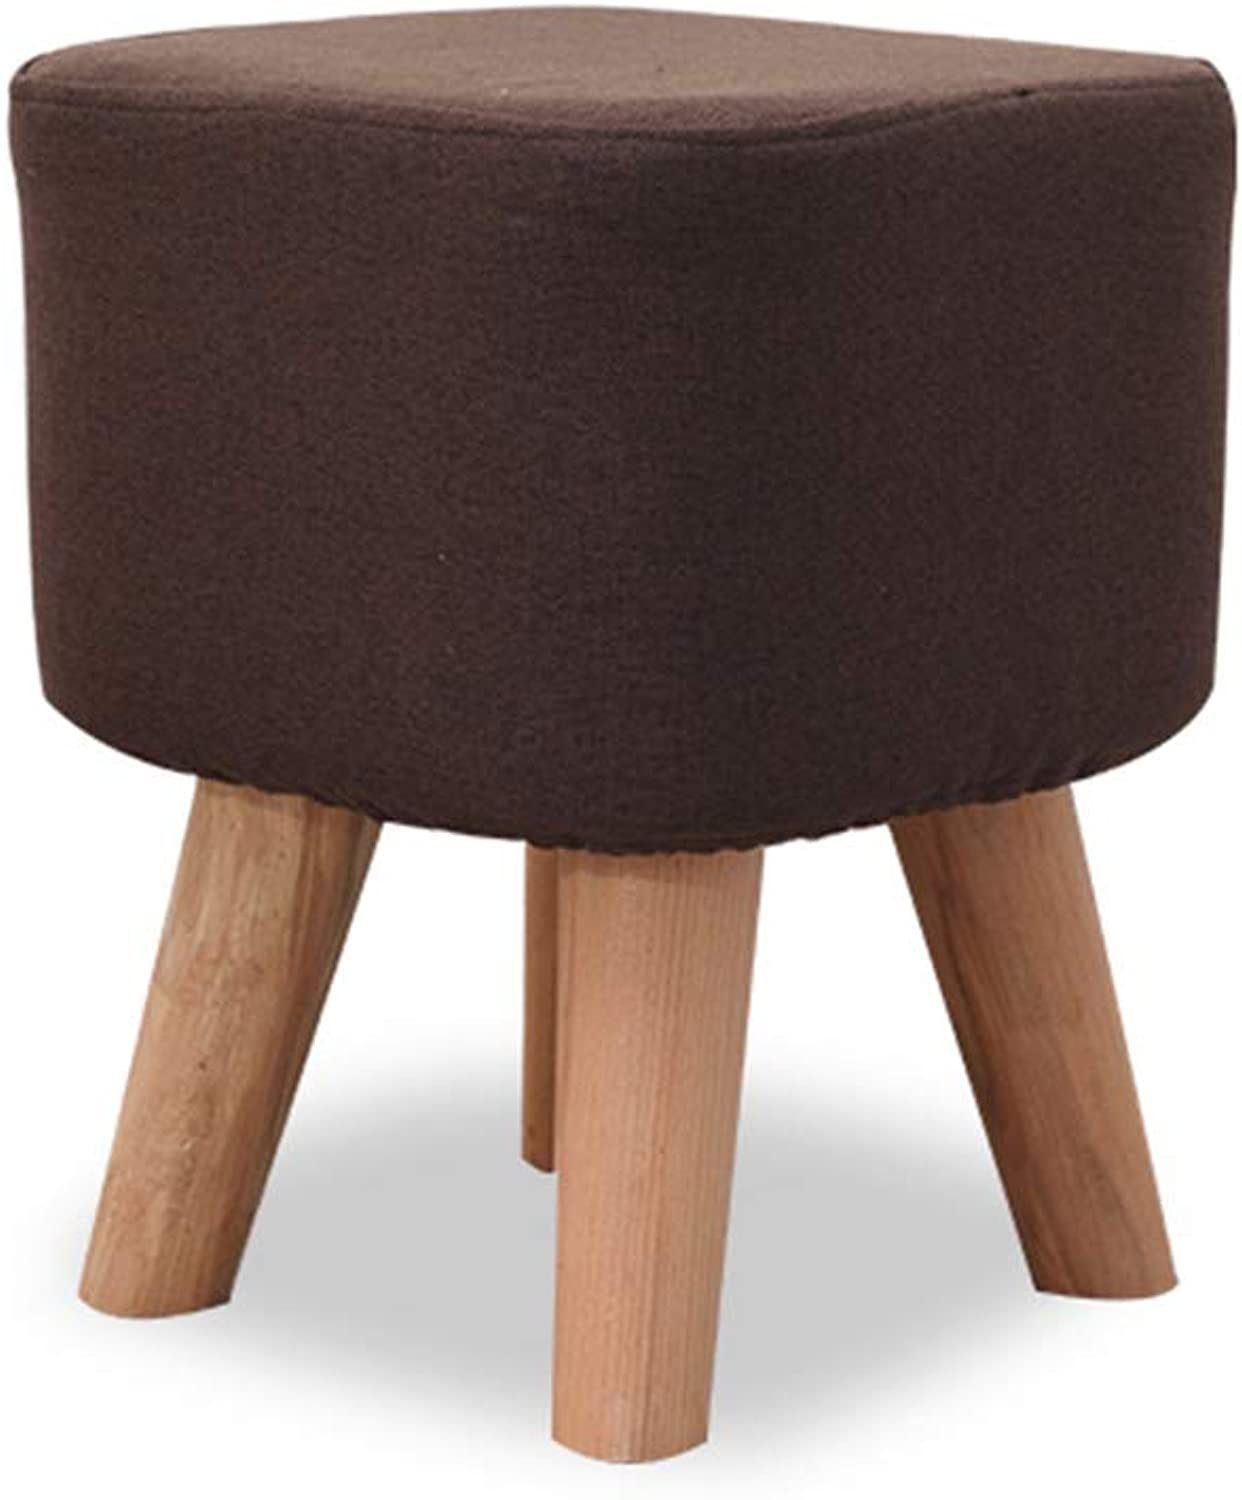 XSJJ Stool, Home Creative Solid Wood Fabric Sofa Round Living Room Mat shoes shoes Stool 6 colors Optional Wooden Bench (color   Brown Square Stool)